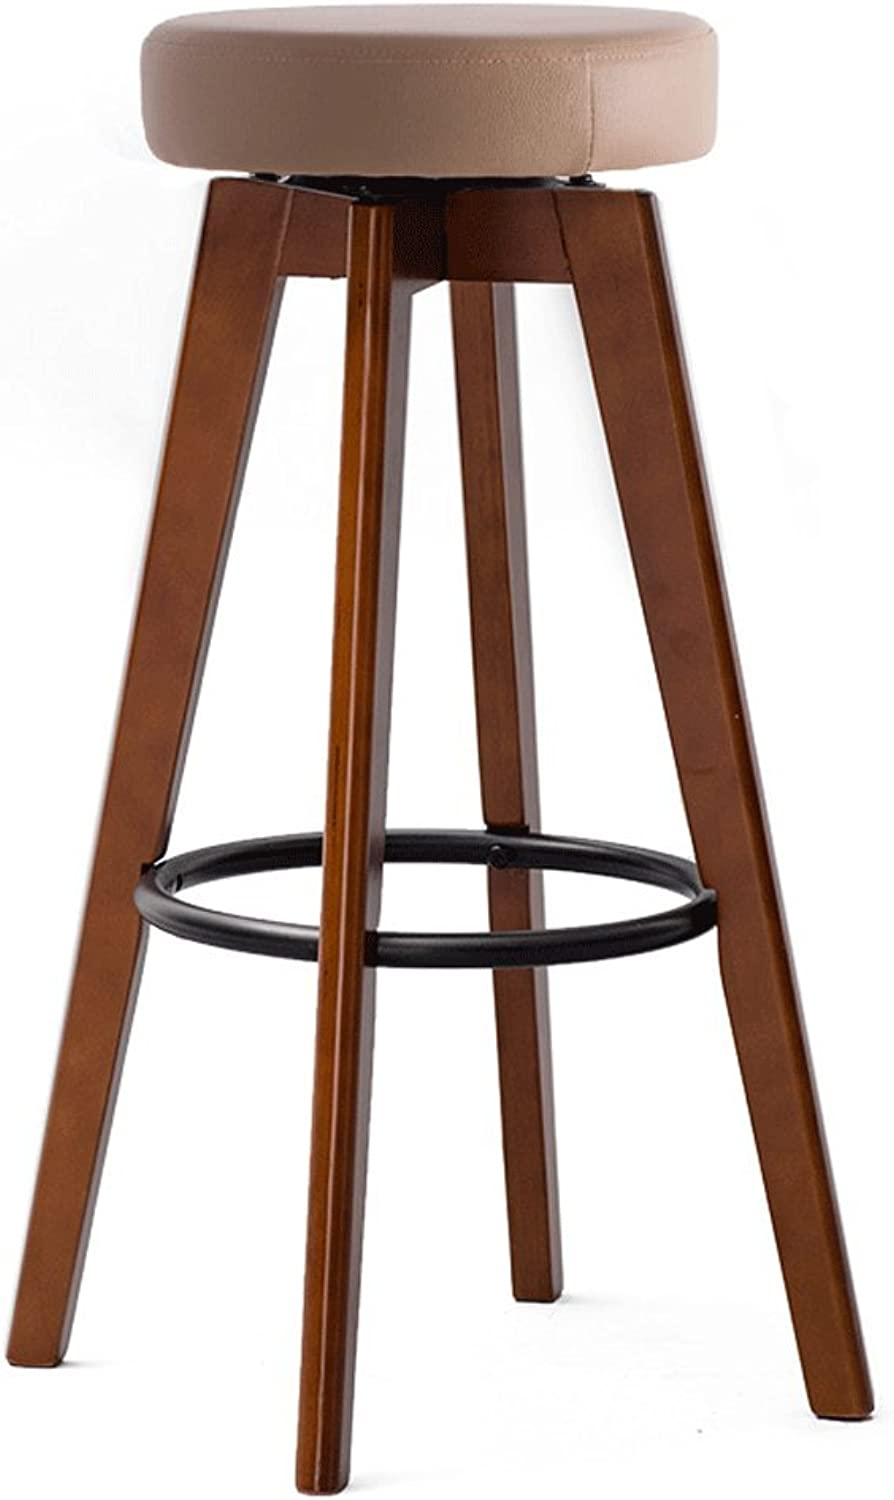 TXXM Barstools Bar Chair Solid Wood Bar Stools redating Creative Chair (color   K, Size   74cm)